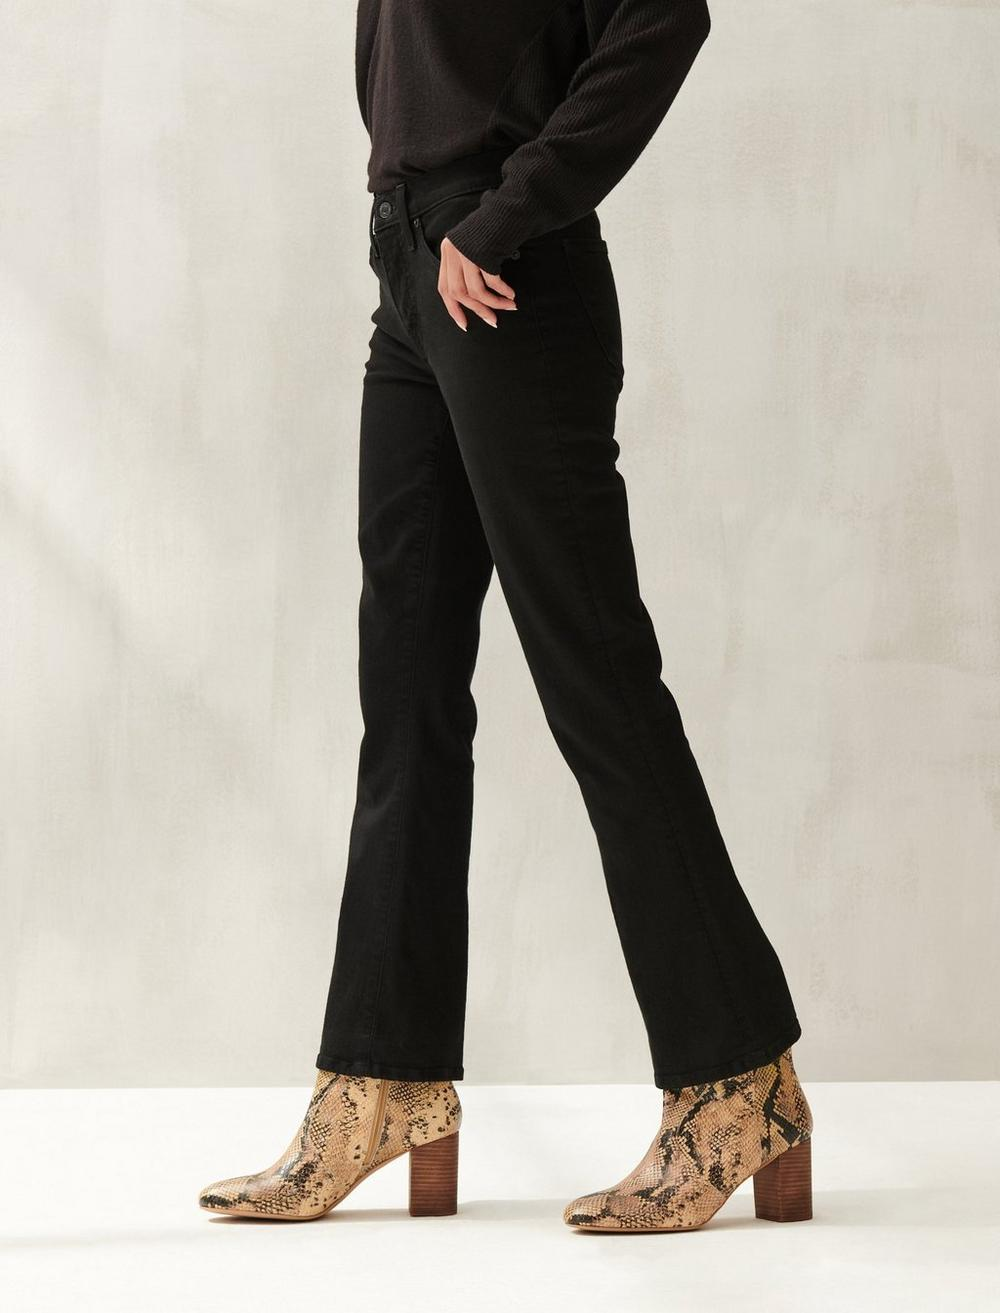 MID RISE AVA BOOT JEAN, image 2